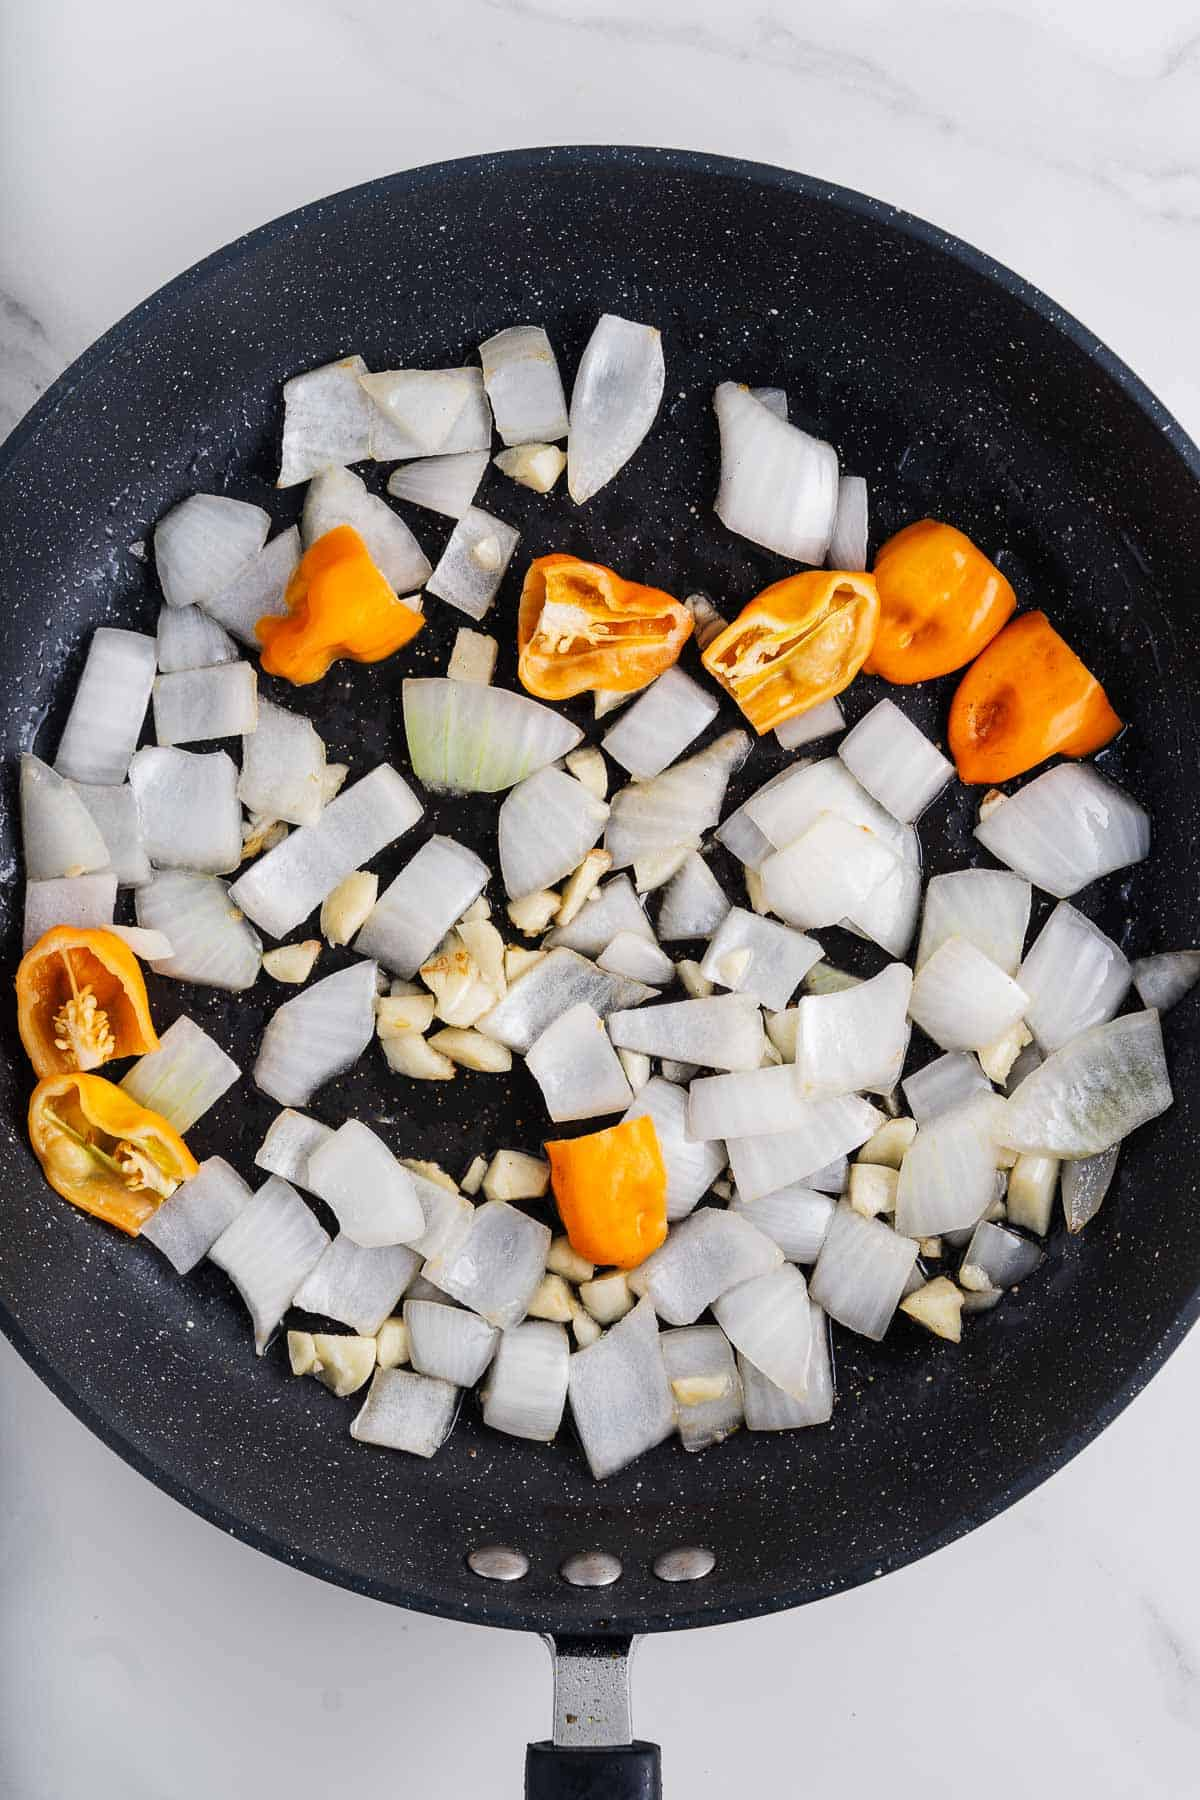 Onions, Garlic, and Habaneros in a Pan